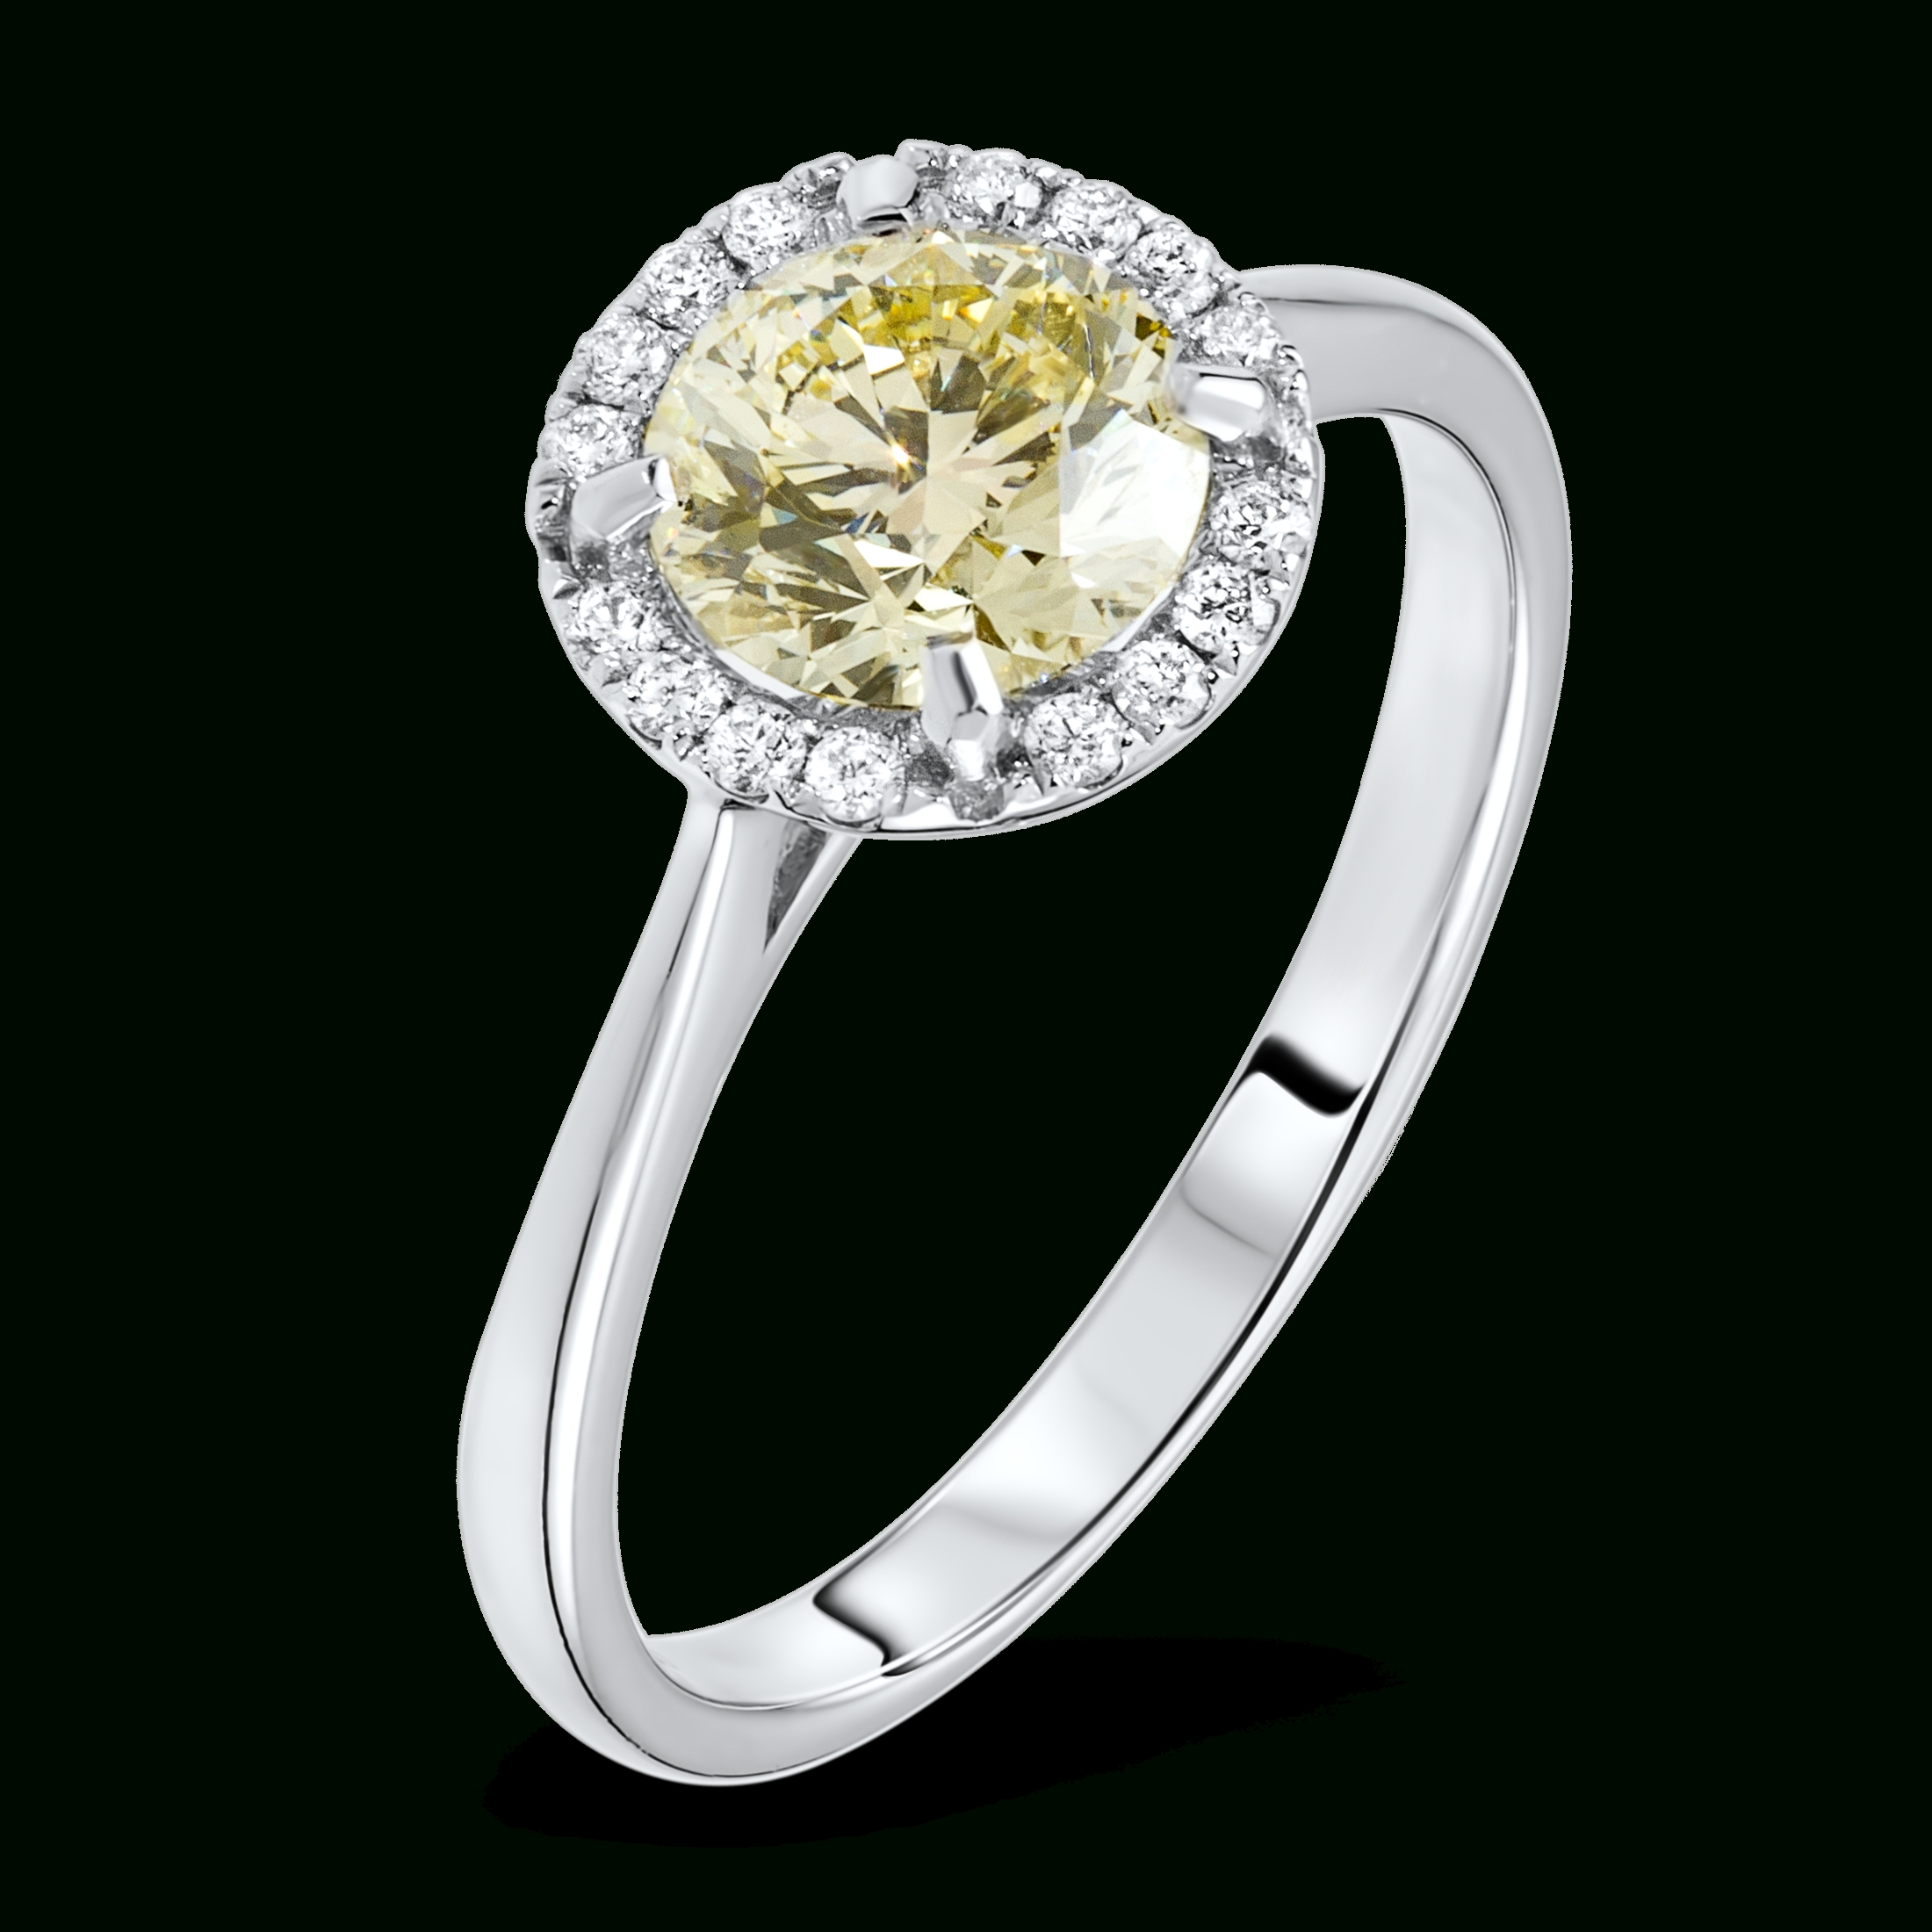 Diamond Ring With Fancy Yellow Diamond – Diamondland Within Extravagant Engagement Rings (Gallery 11 of 15)